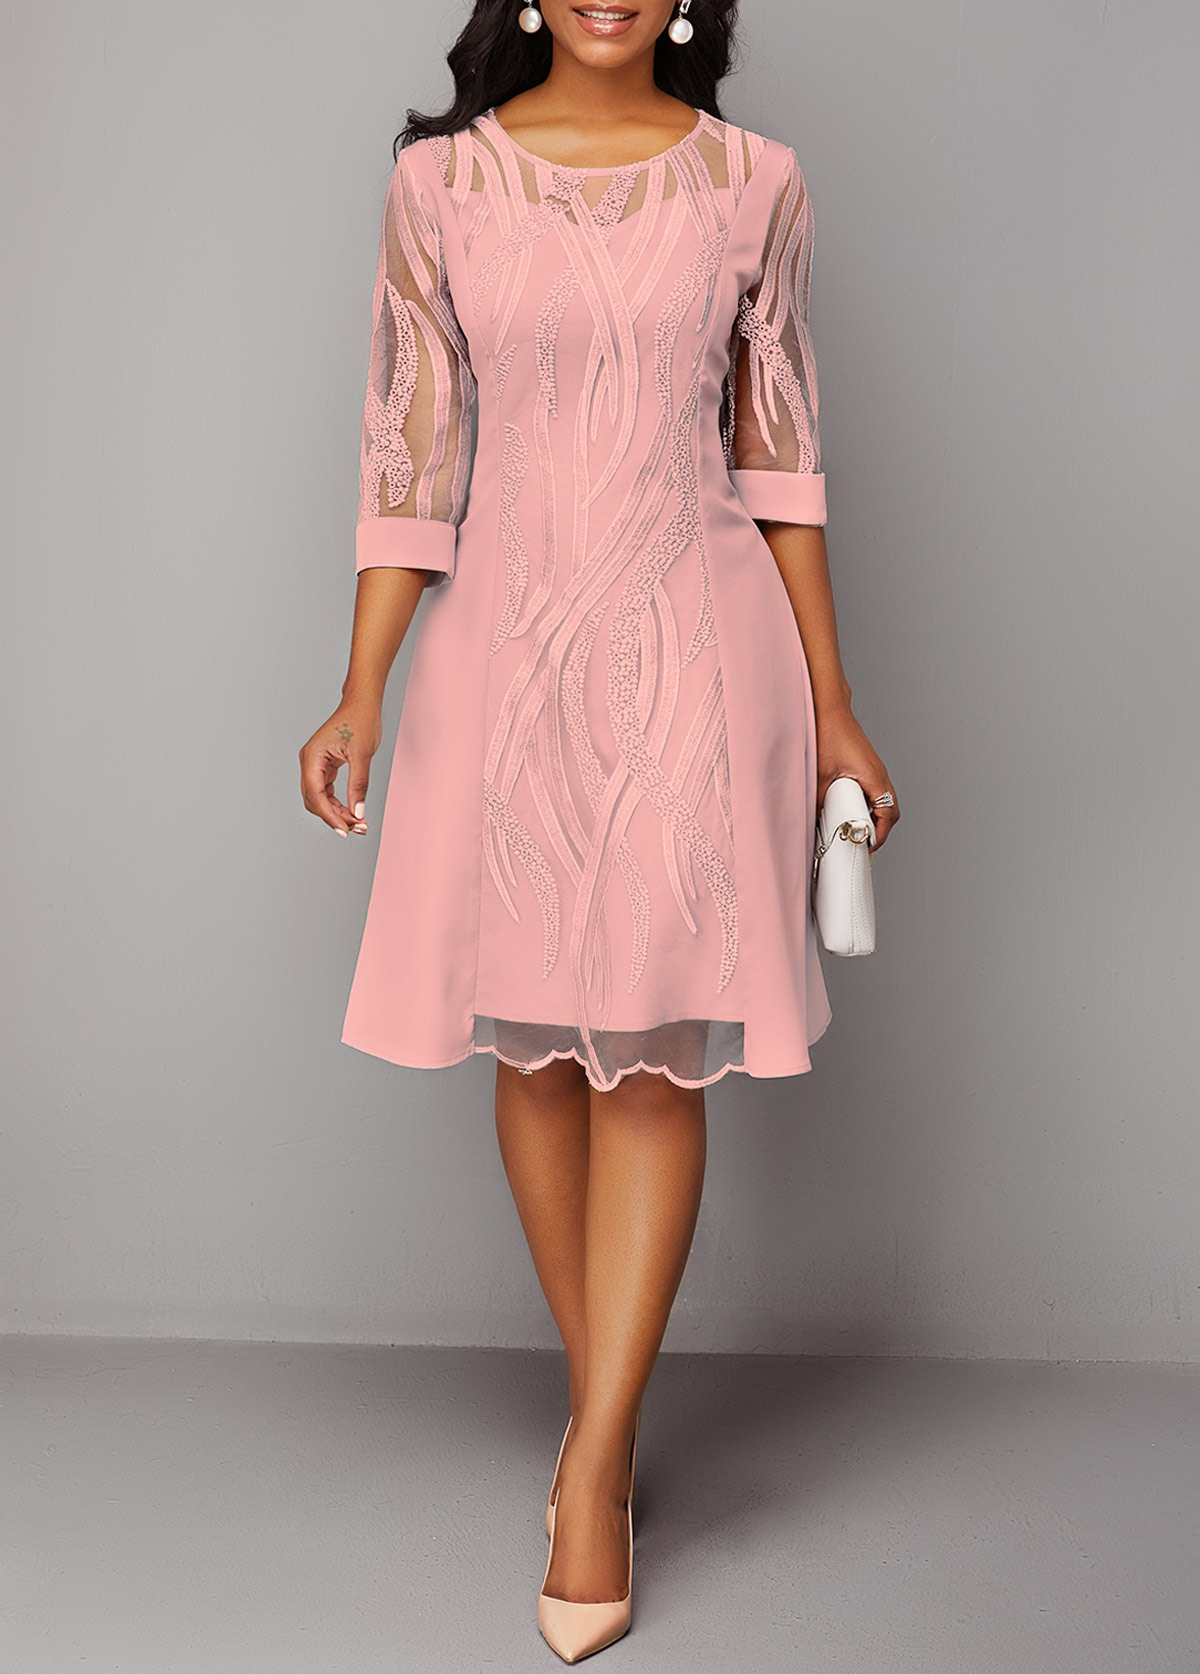 Round Neck Three Quarter Sleeve Pink Lace Dress